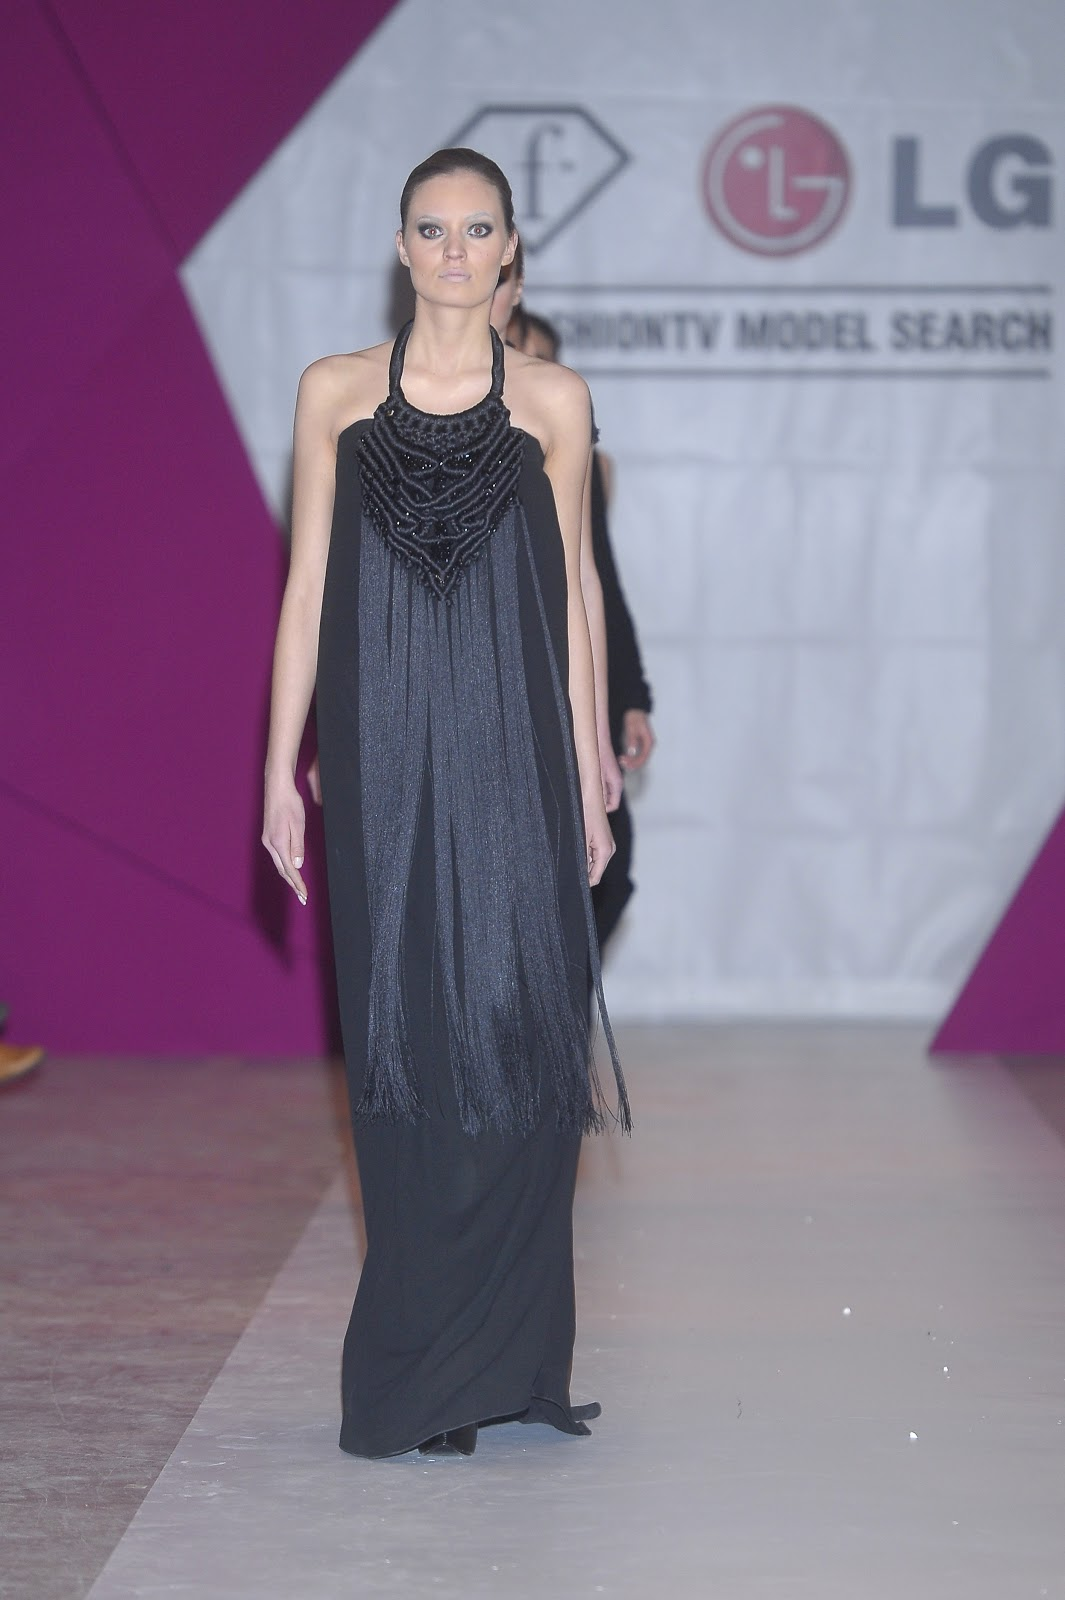 akpa20130130_lg_fashion_tv_2833.jpg